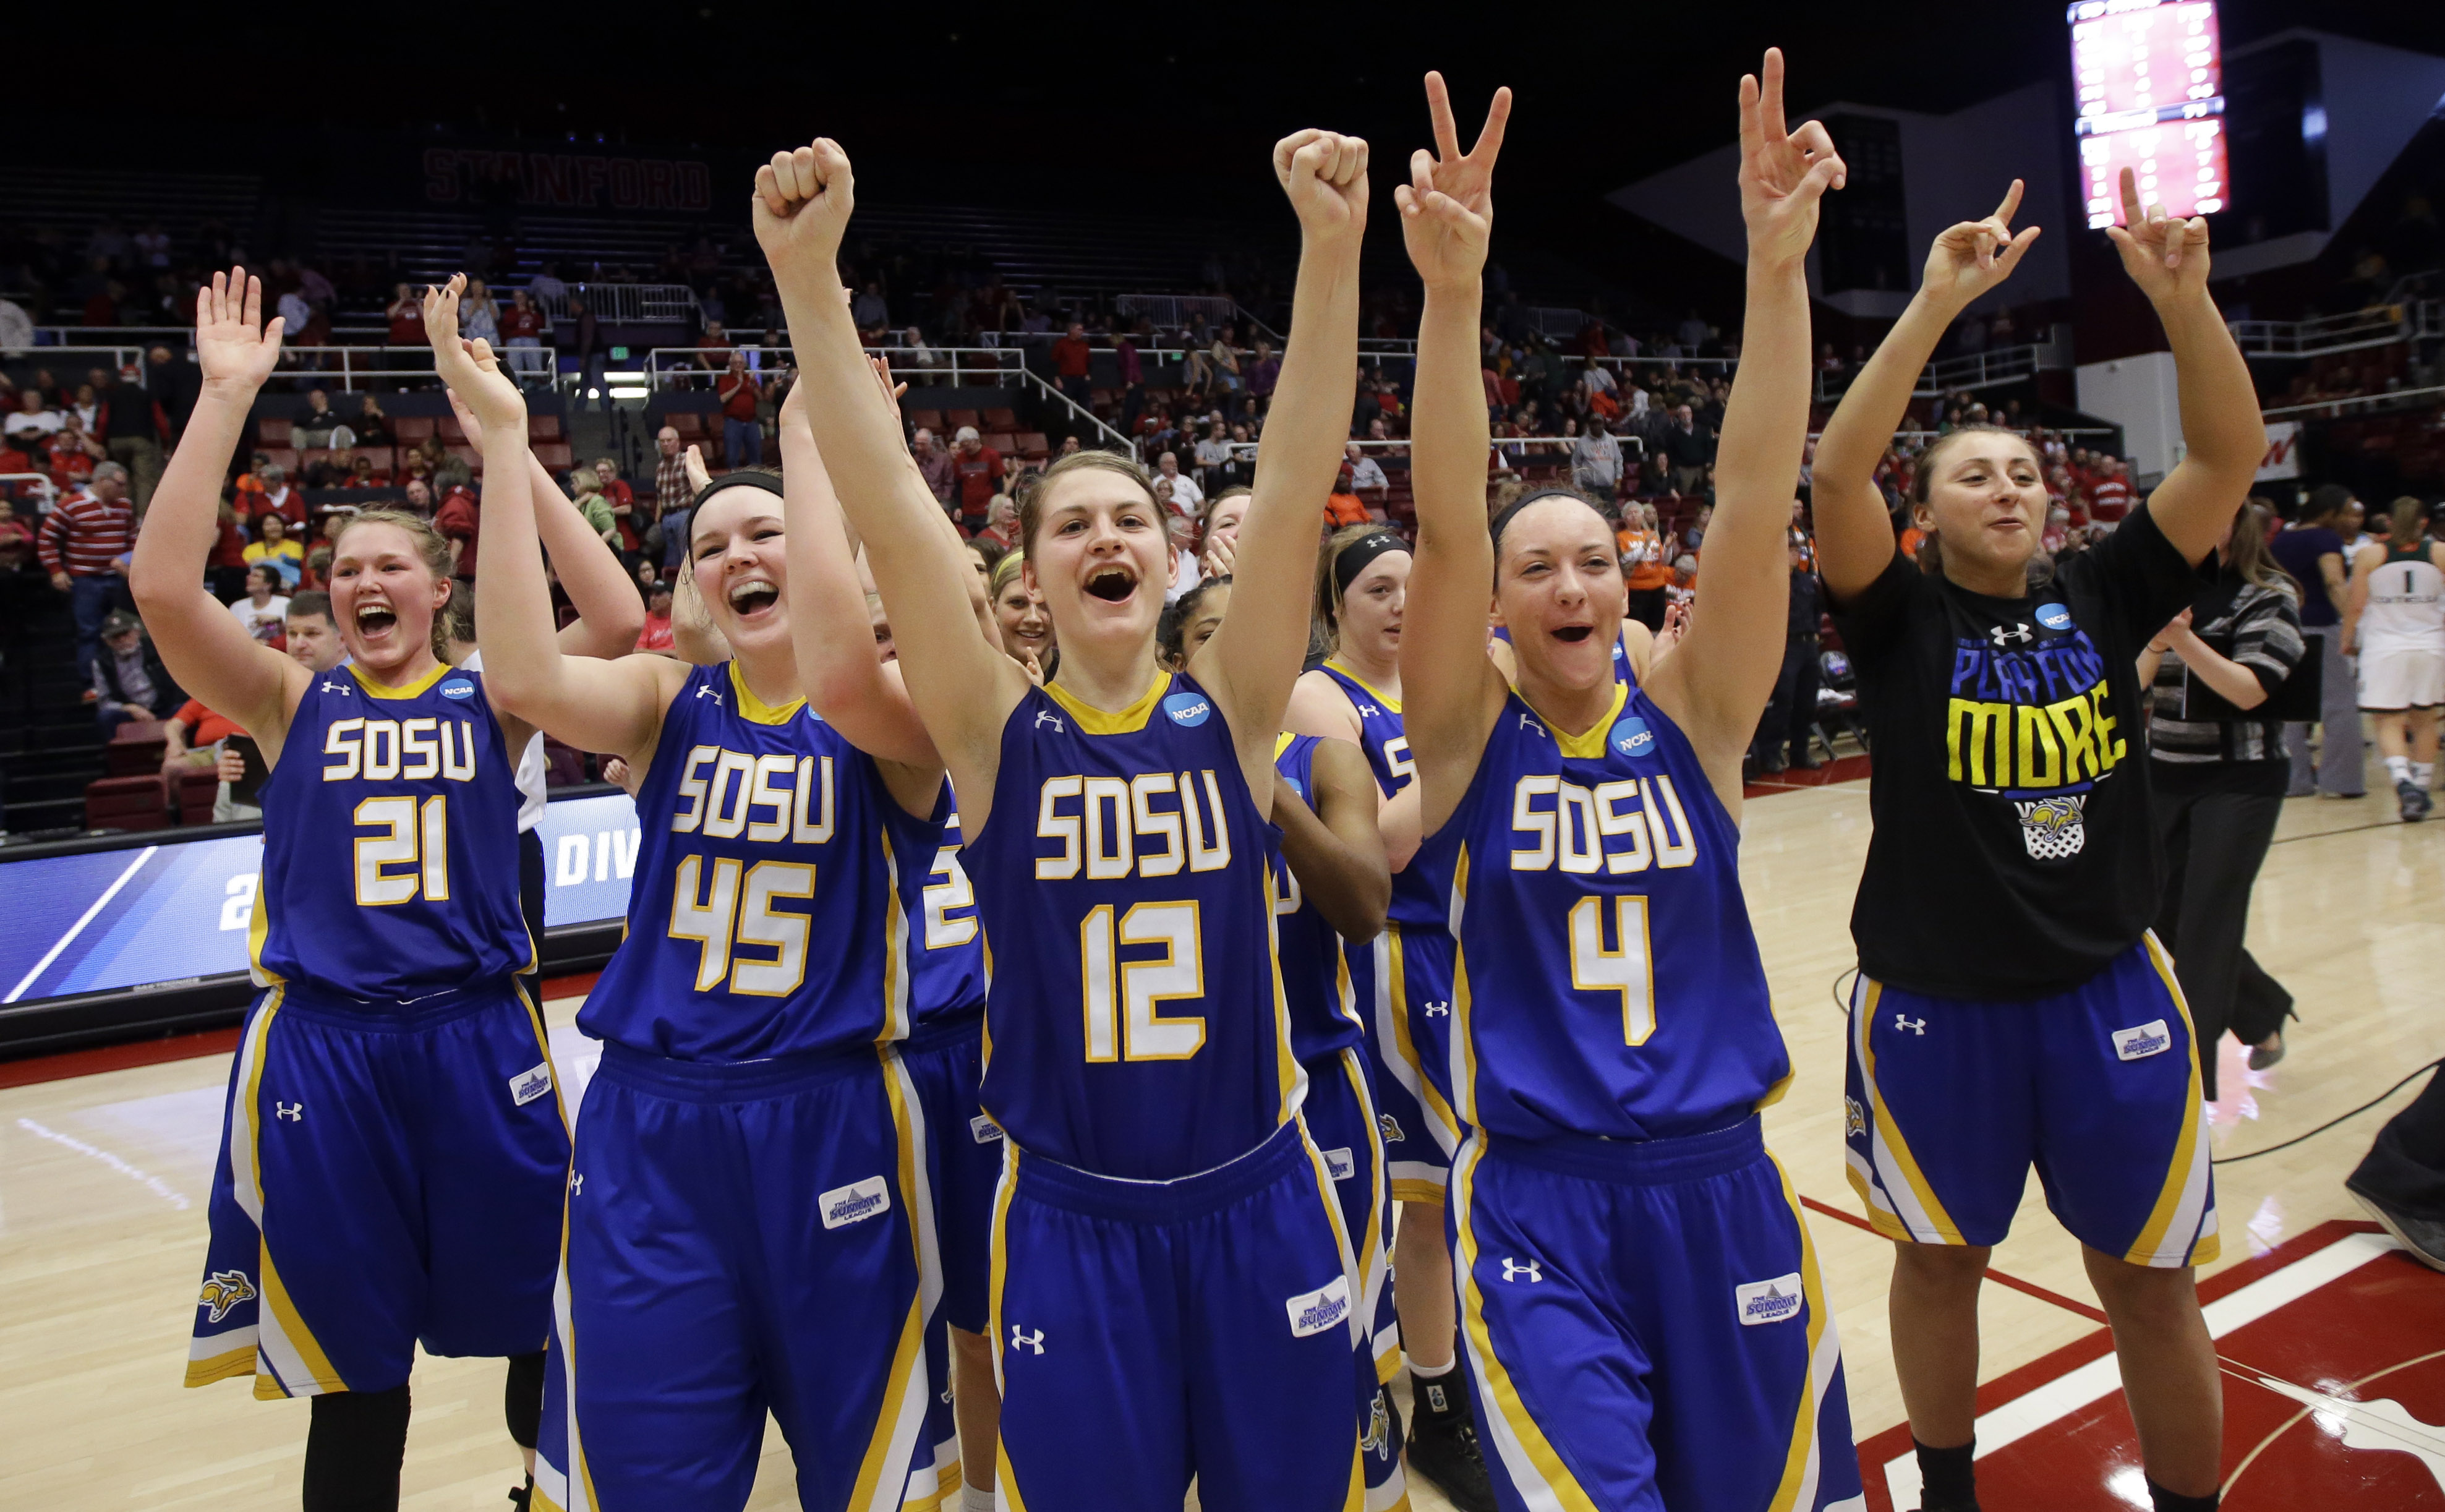 South Dakota State players celebrate after a 74-71 win over Miami in a first-round women's college basketball game in the NCAA Tournament Saturday, March 19, 2016, in Stanford, Calif. (AP Photo/Marcio Jose Sanchez)